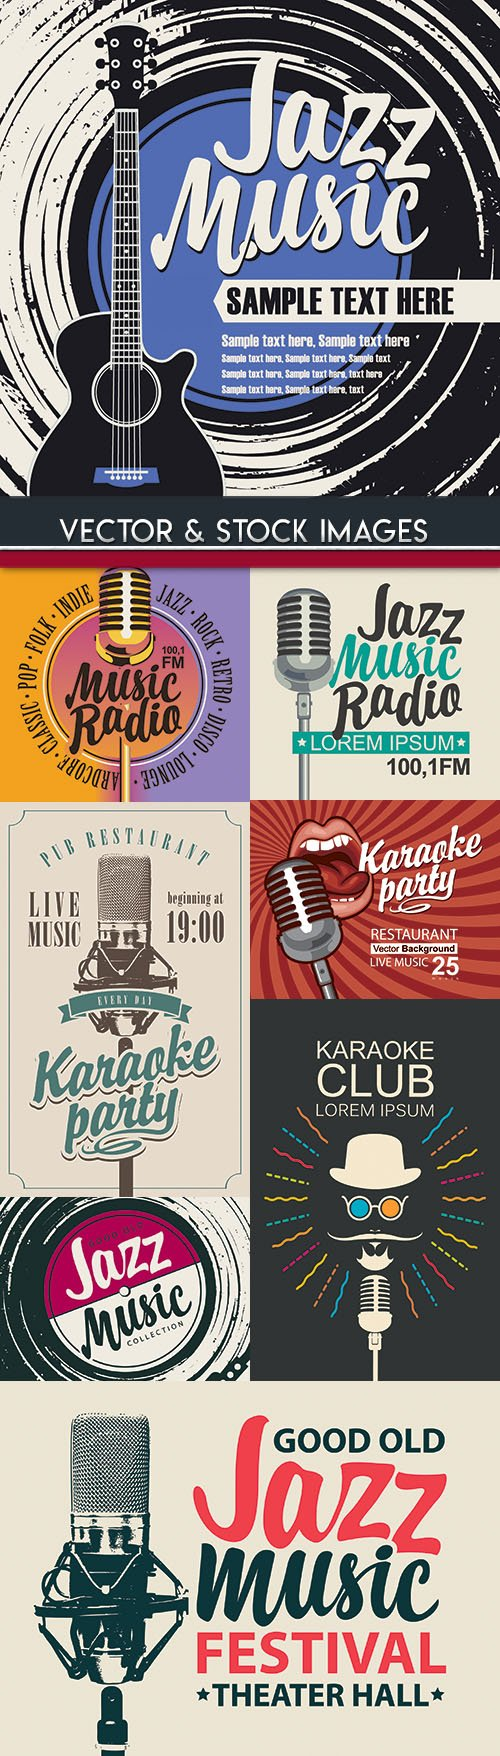 Music jazz festival and karaoke party design